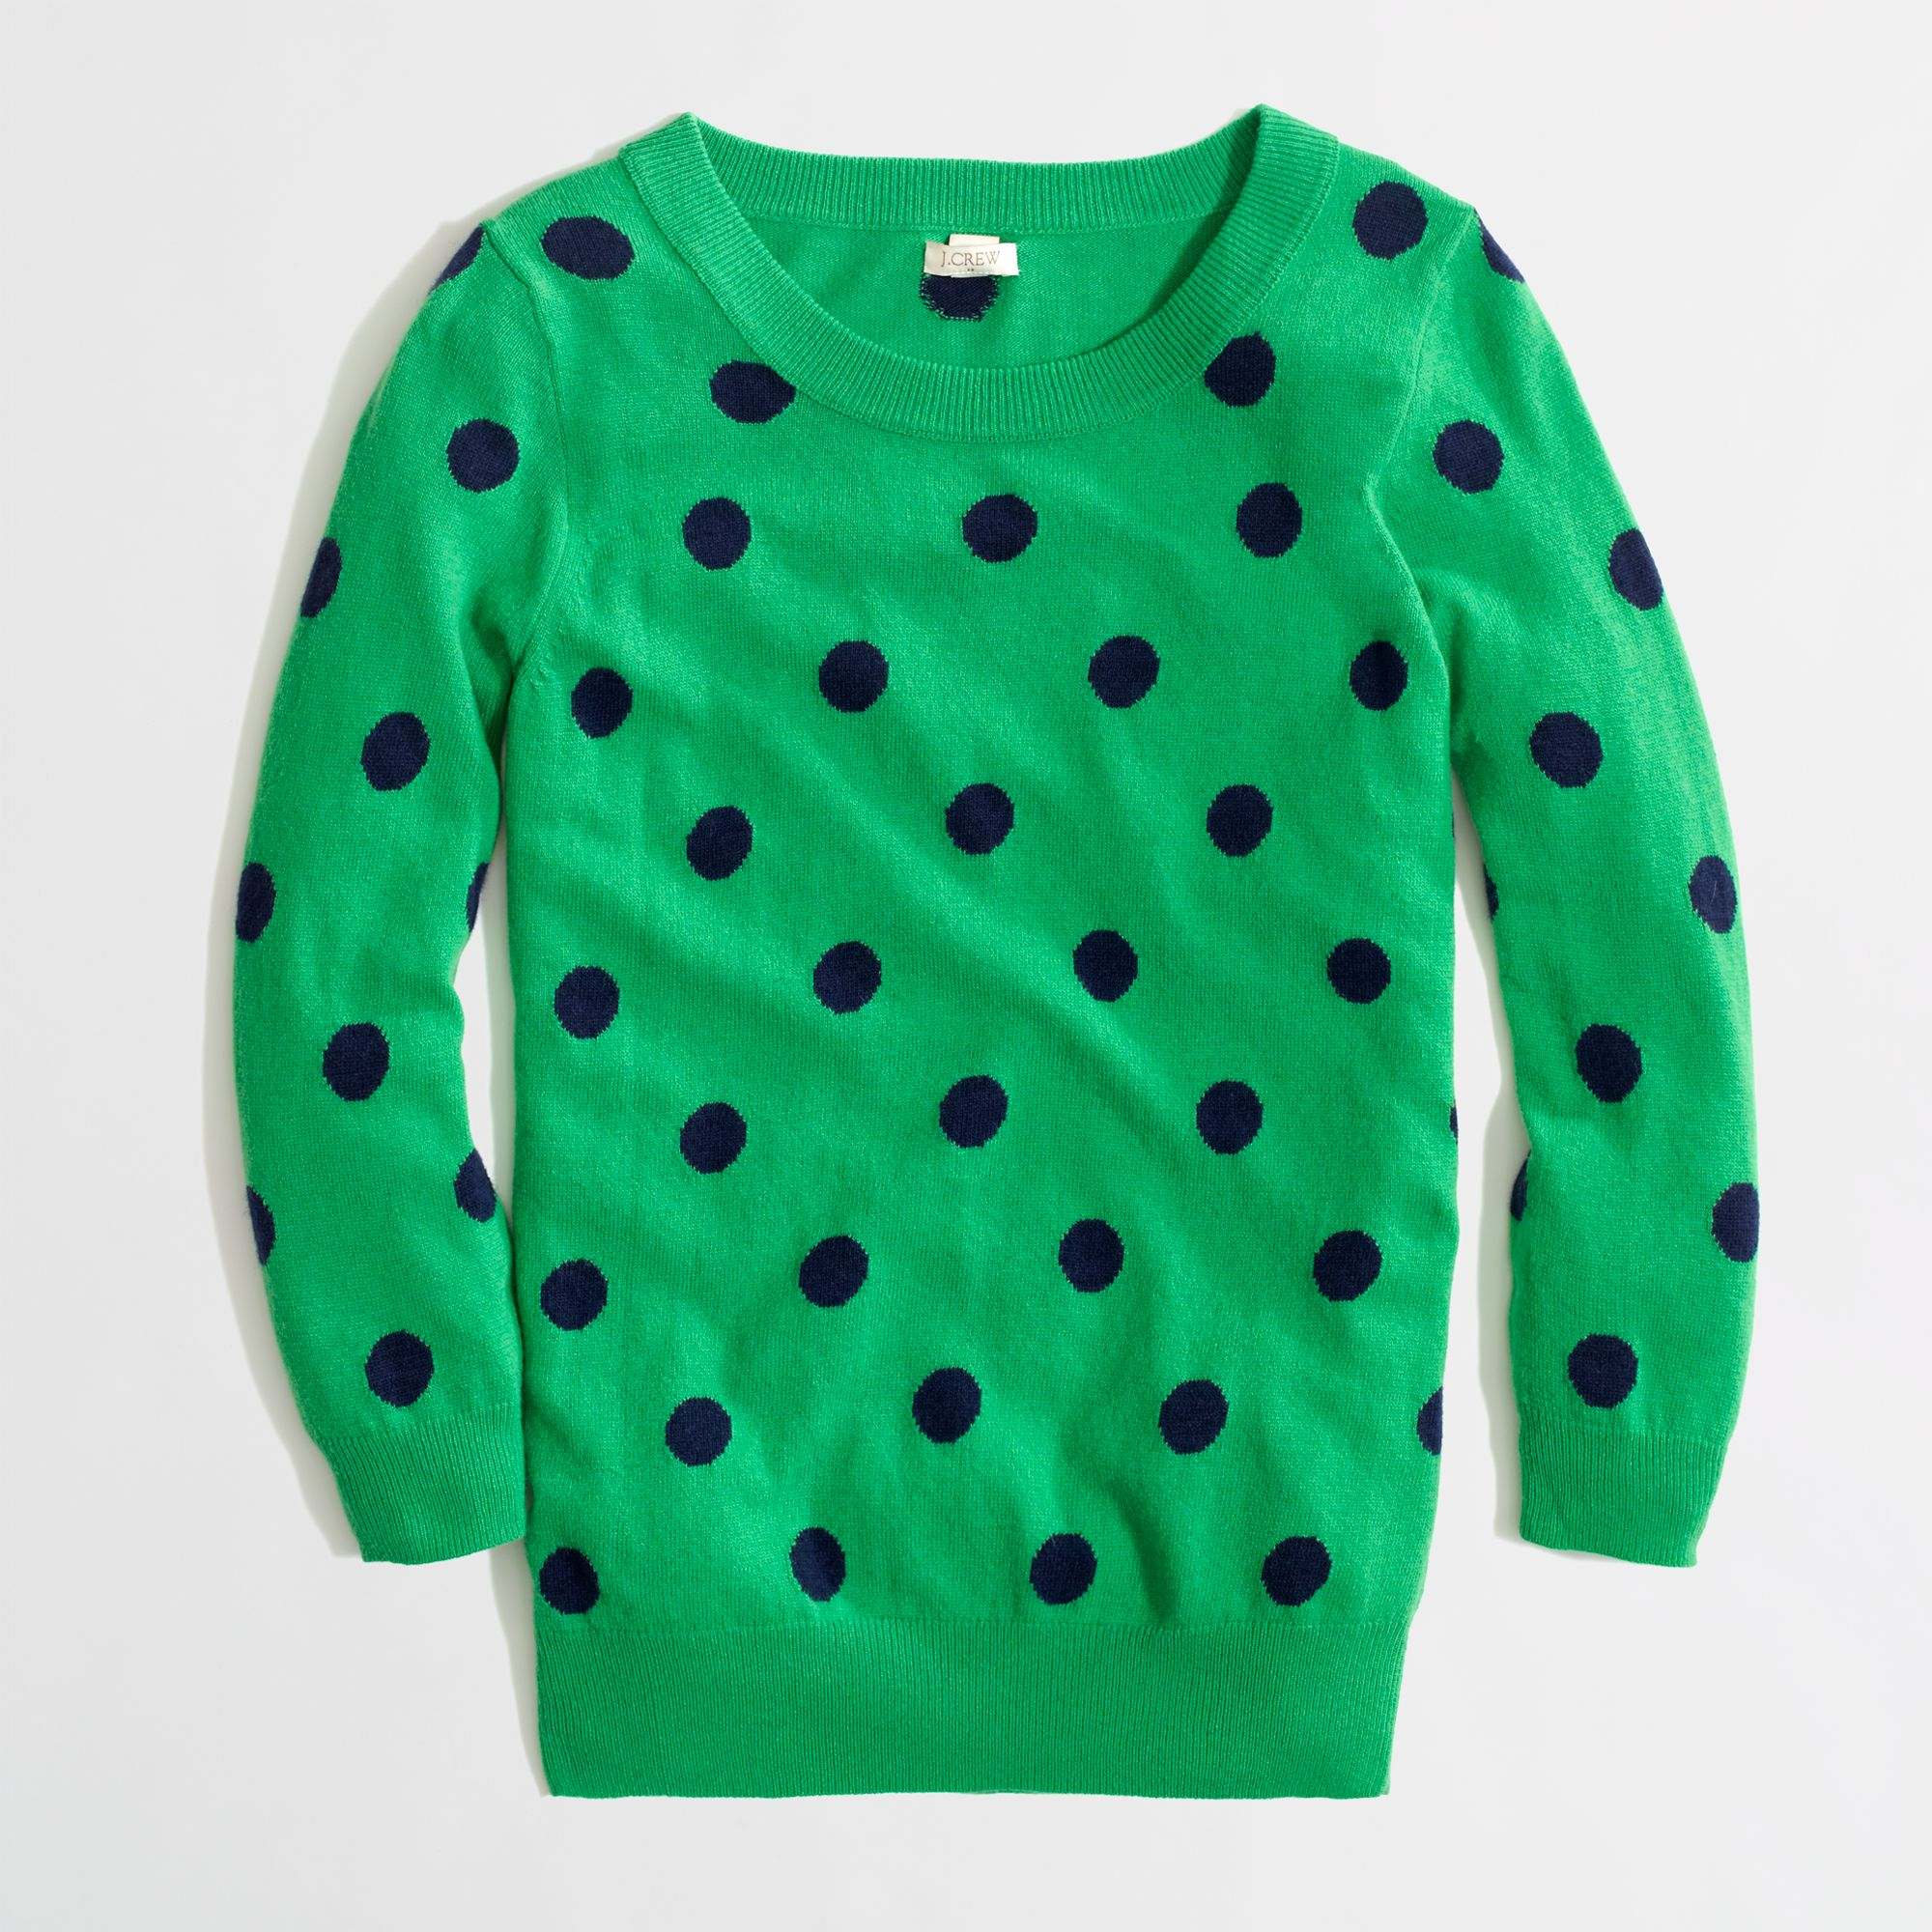 J.crew Factory Intarsia Charley Sweater in Polka Dot in Green | Lyst